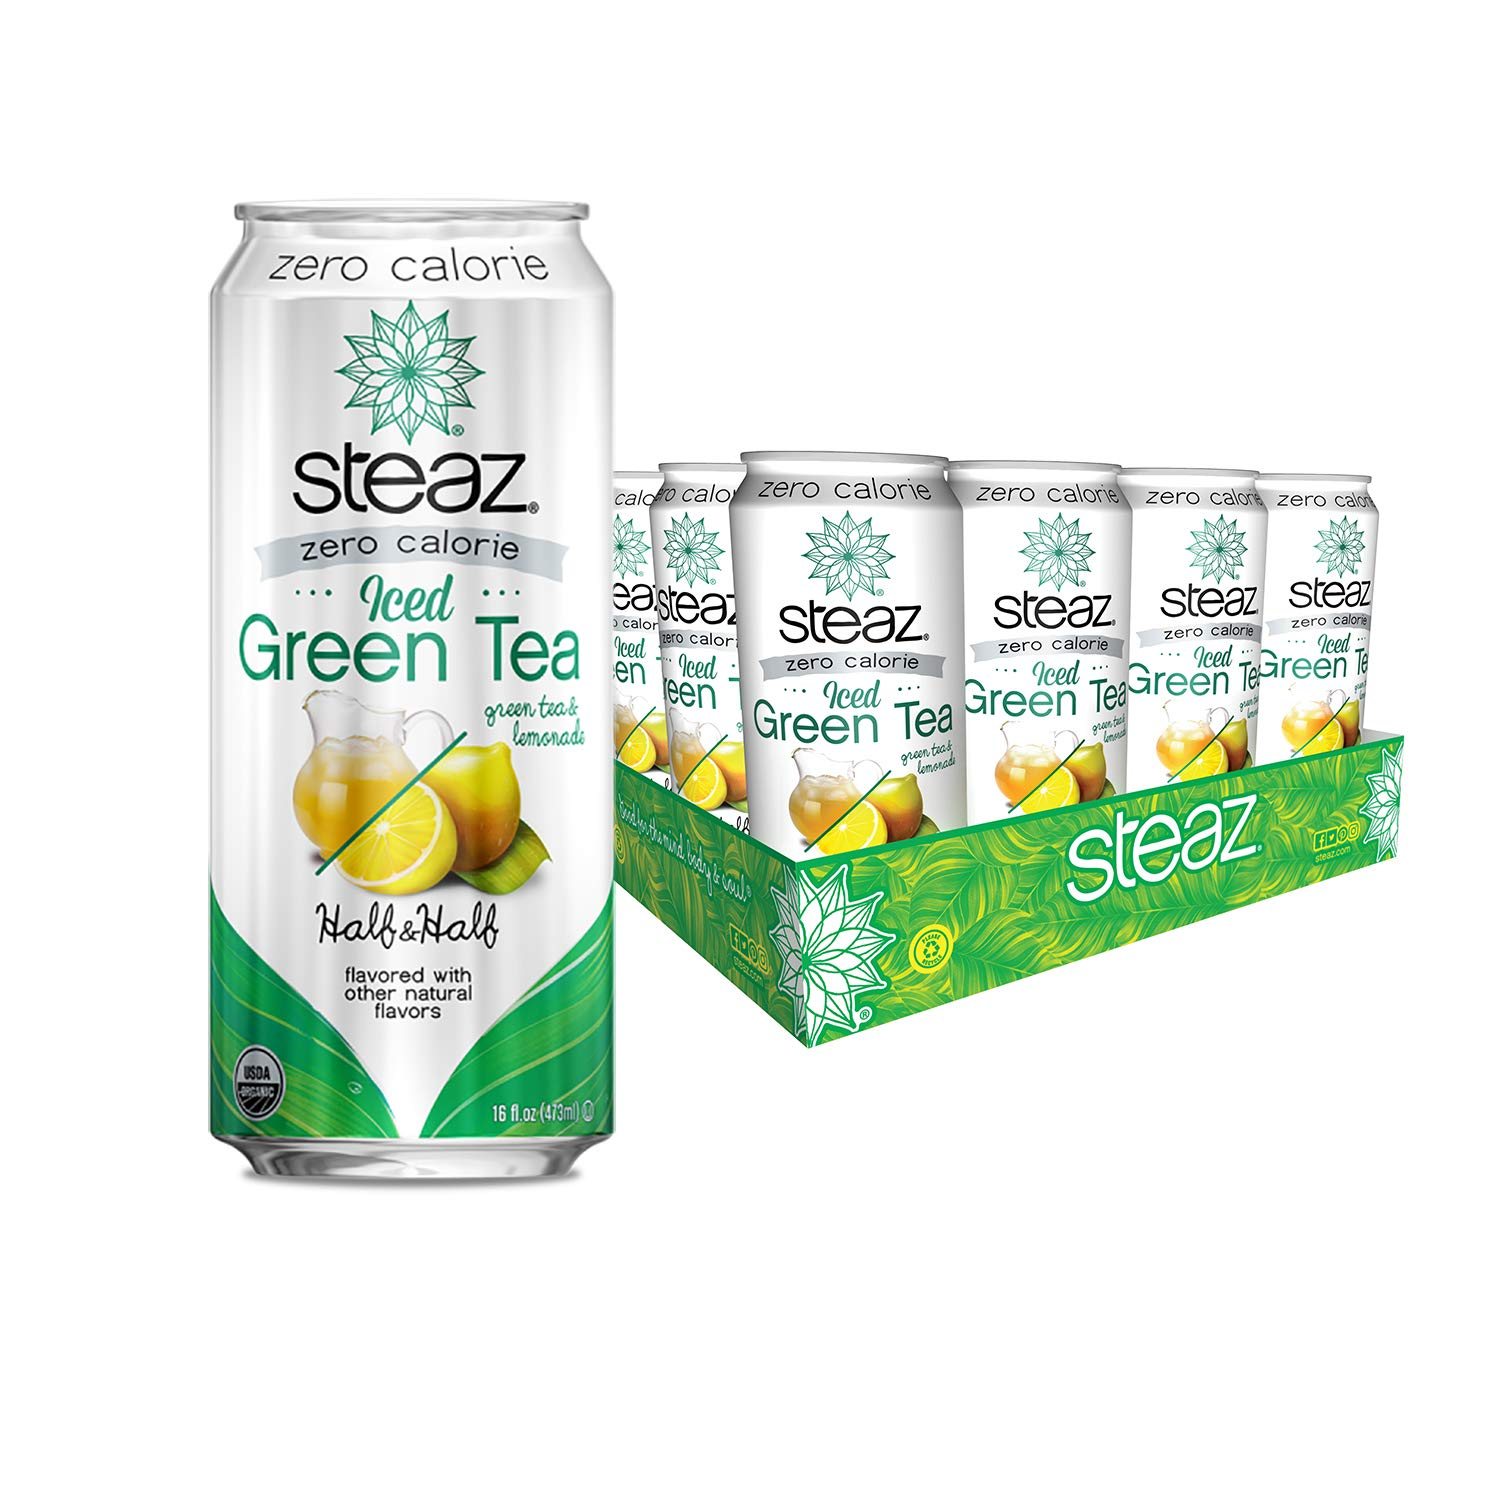 Steaz Organic Zero Calorie Iced Green Tea with Lemonade, Half & Half, 16 FL OZ (Pack of 12)